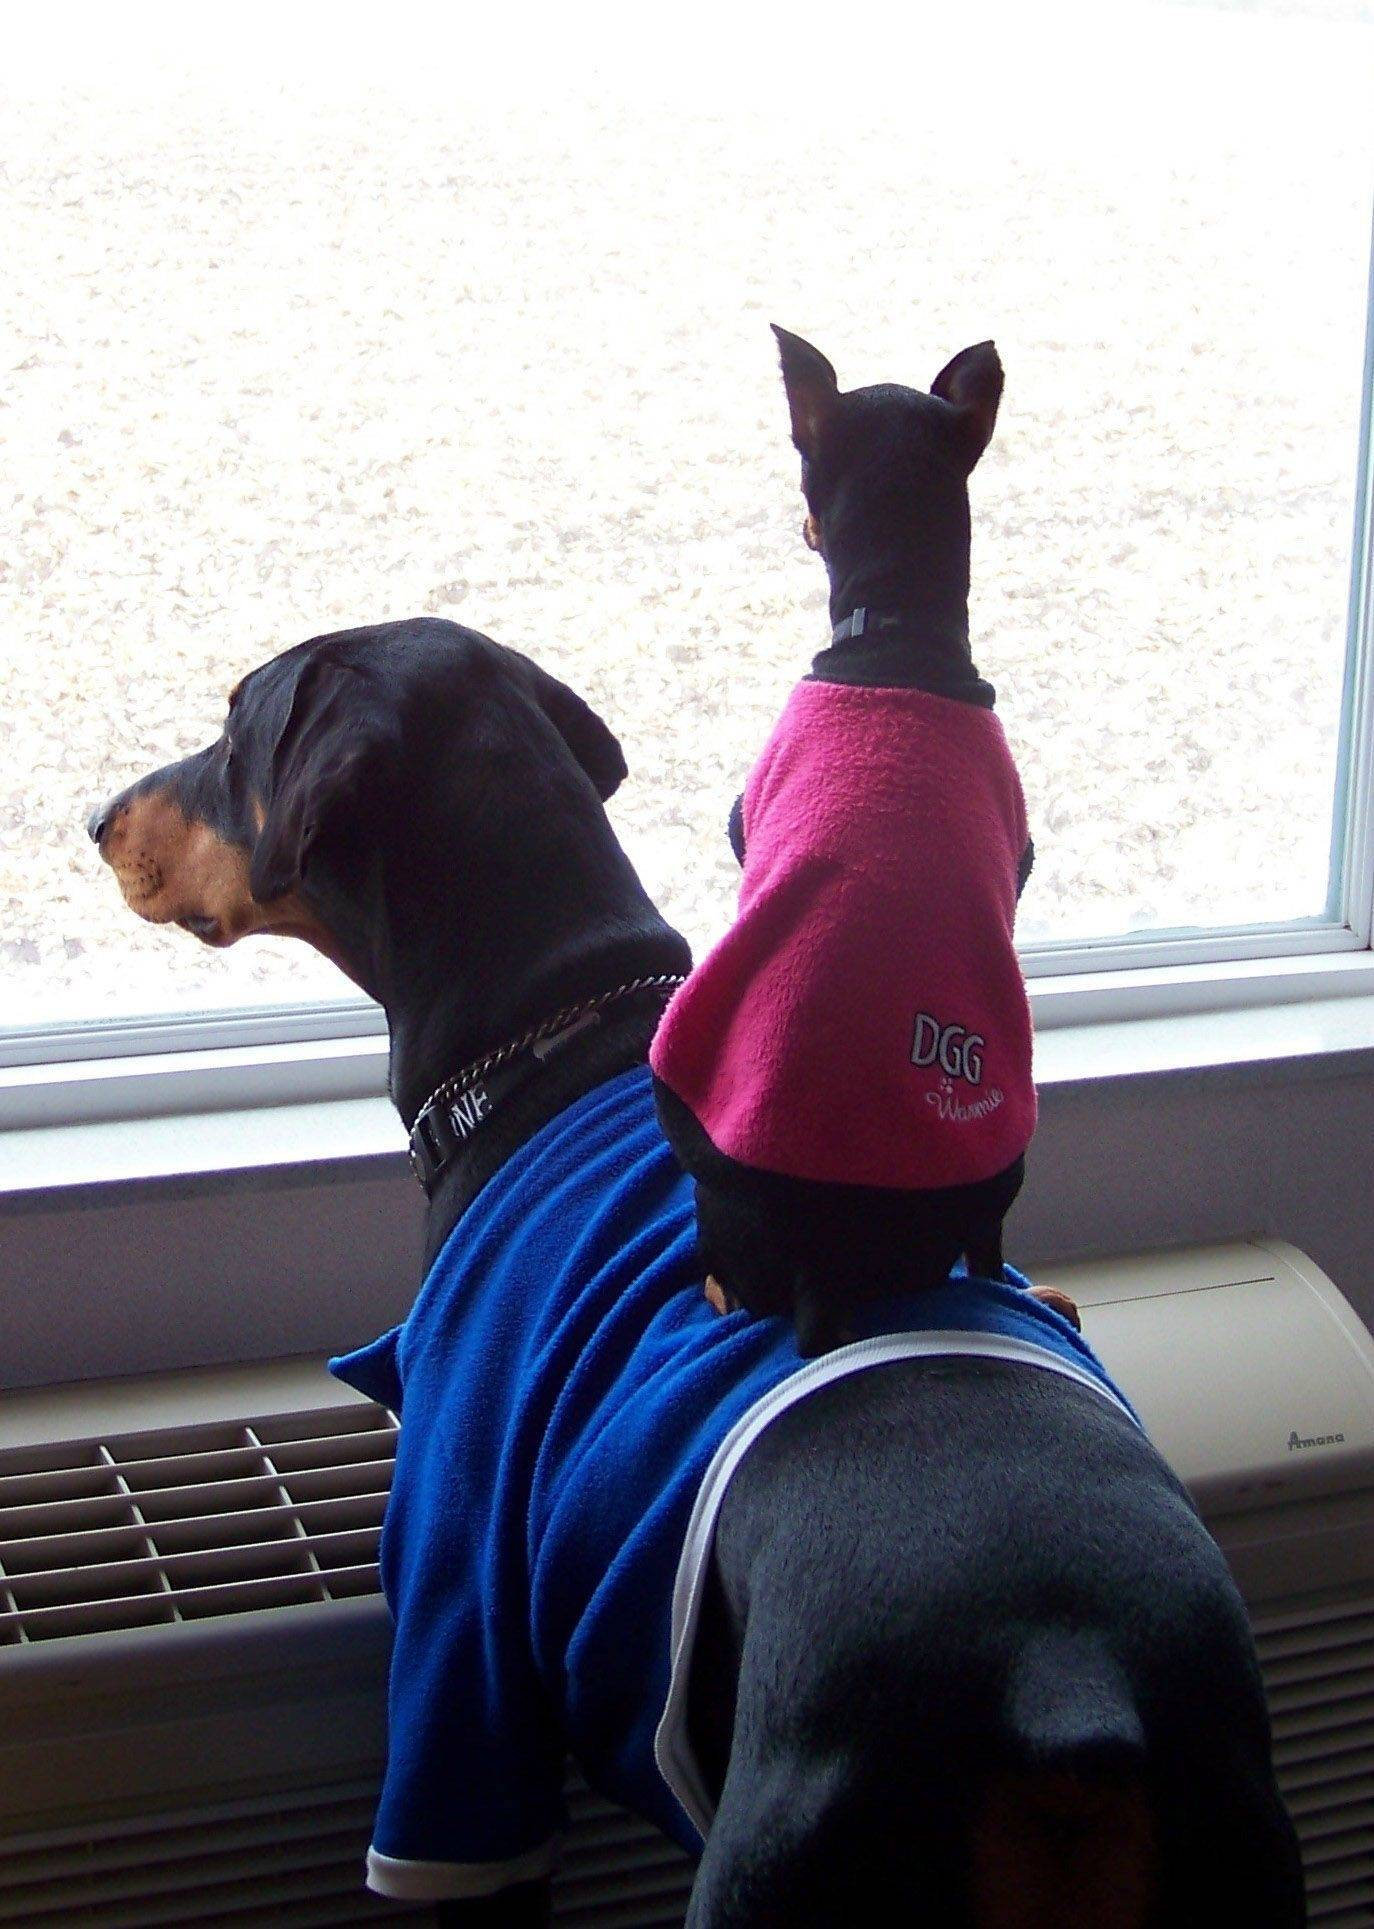 Duchess, a mini pinscher, takes advantage of a higher perch on Duke, a Doberman pinscher, while they look out a hotel room window in Mendota, IL.